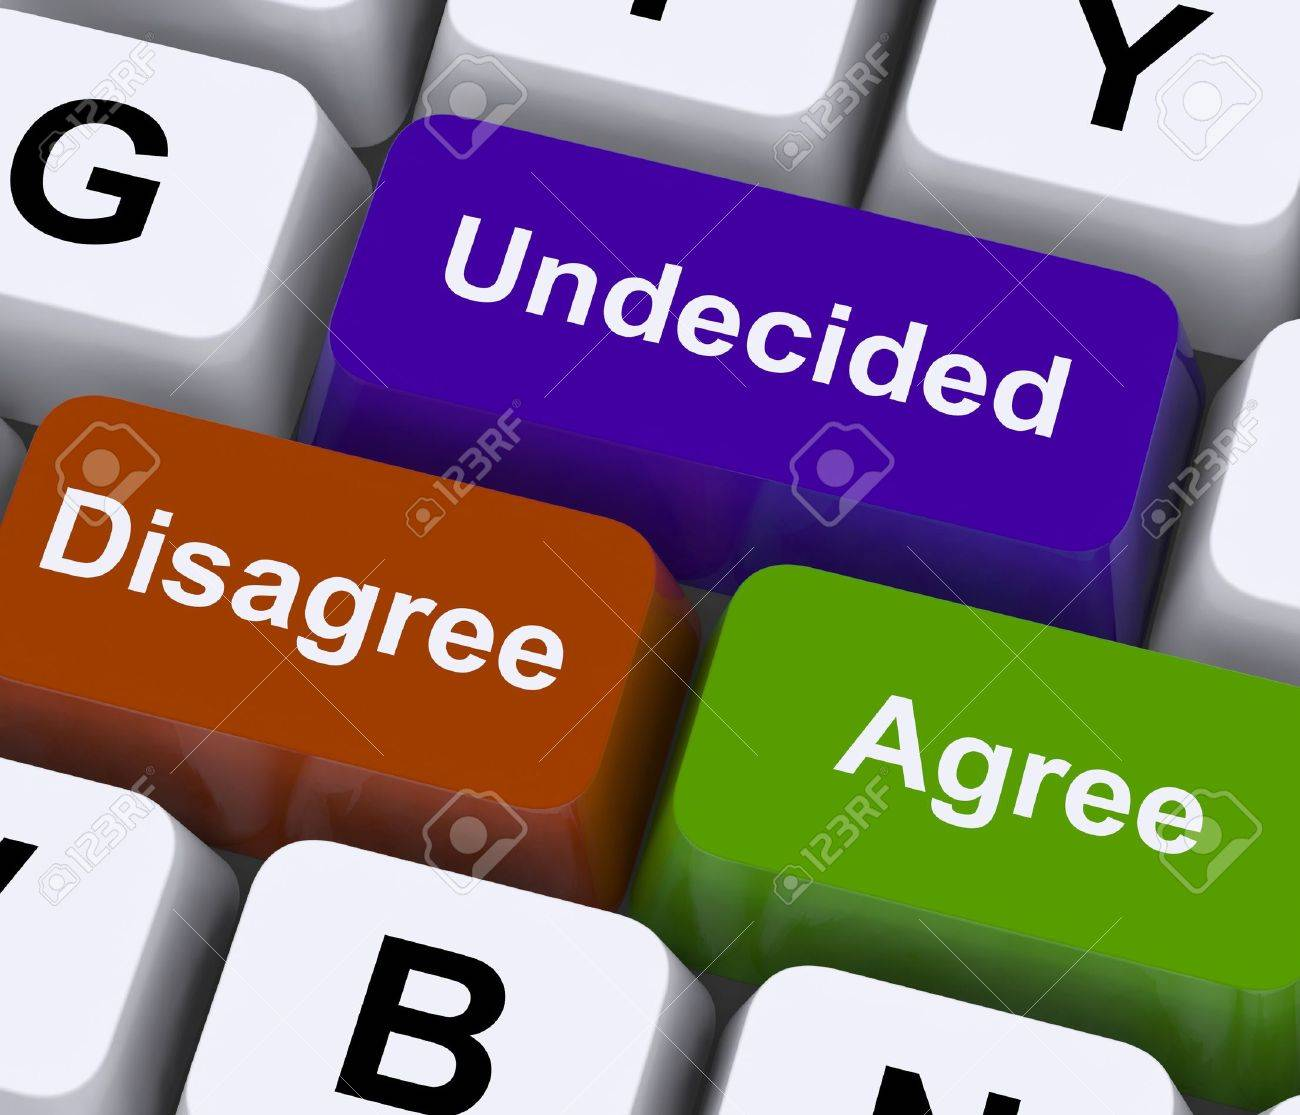 Disagree Agree Undecided Keys For Online Poll Or Voting Stock Photo - 14562630